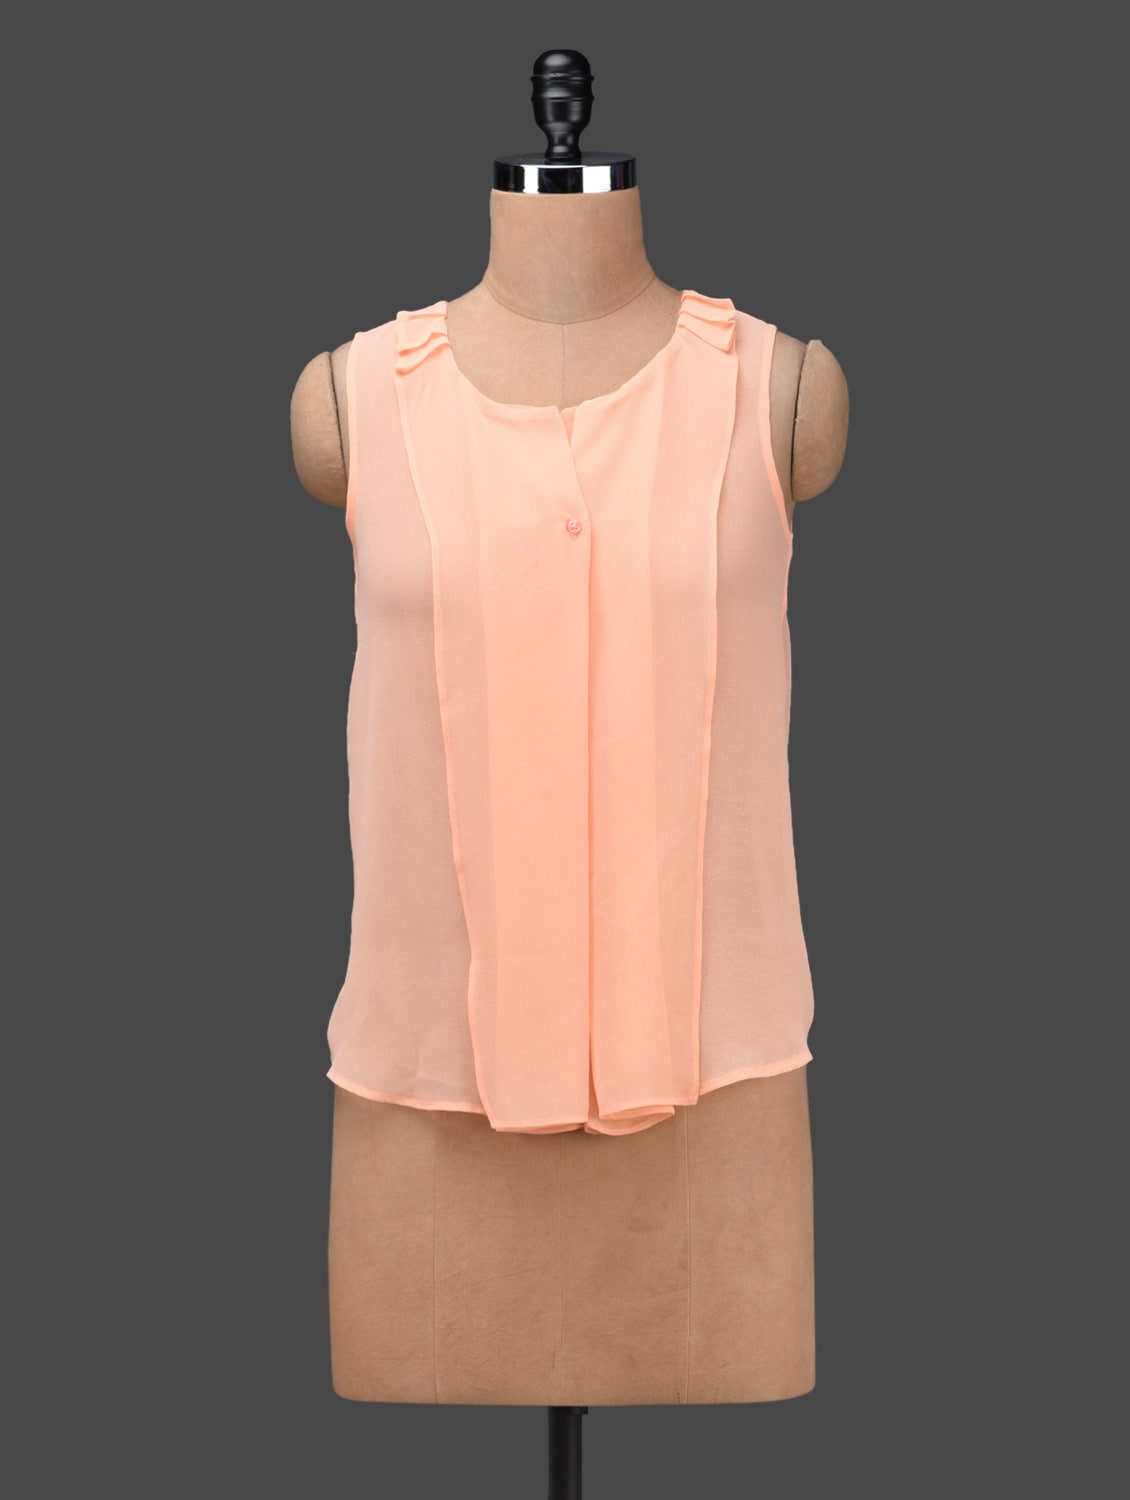 Peach Sleeveless Georgette Top - Ama Bella